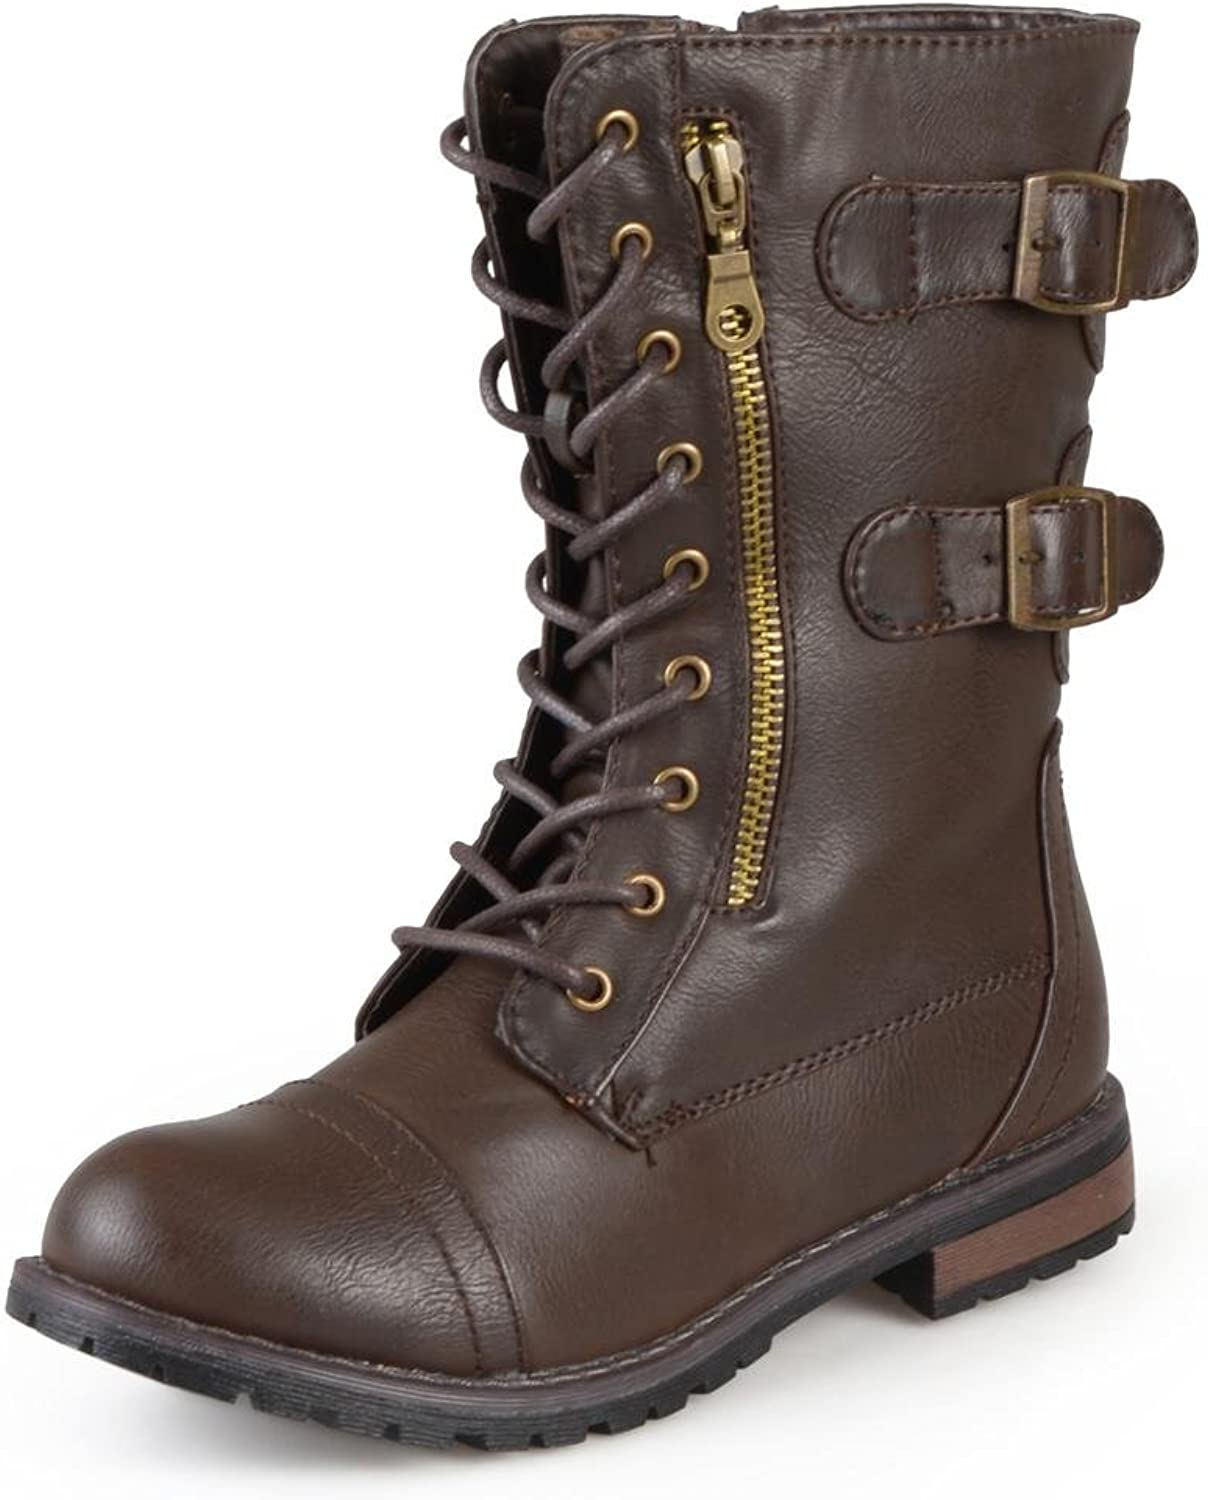 Journee Collection Womens Combat Buckle Mid-Calf Lace-Up Boot